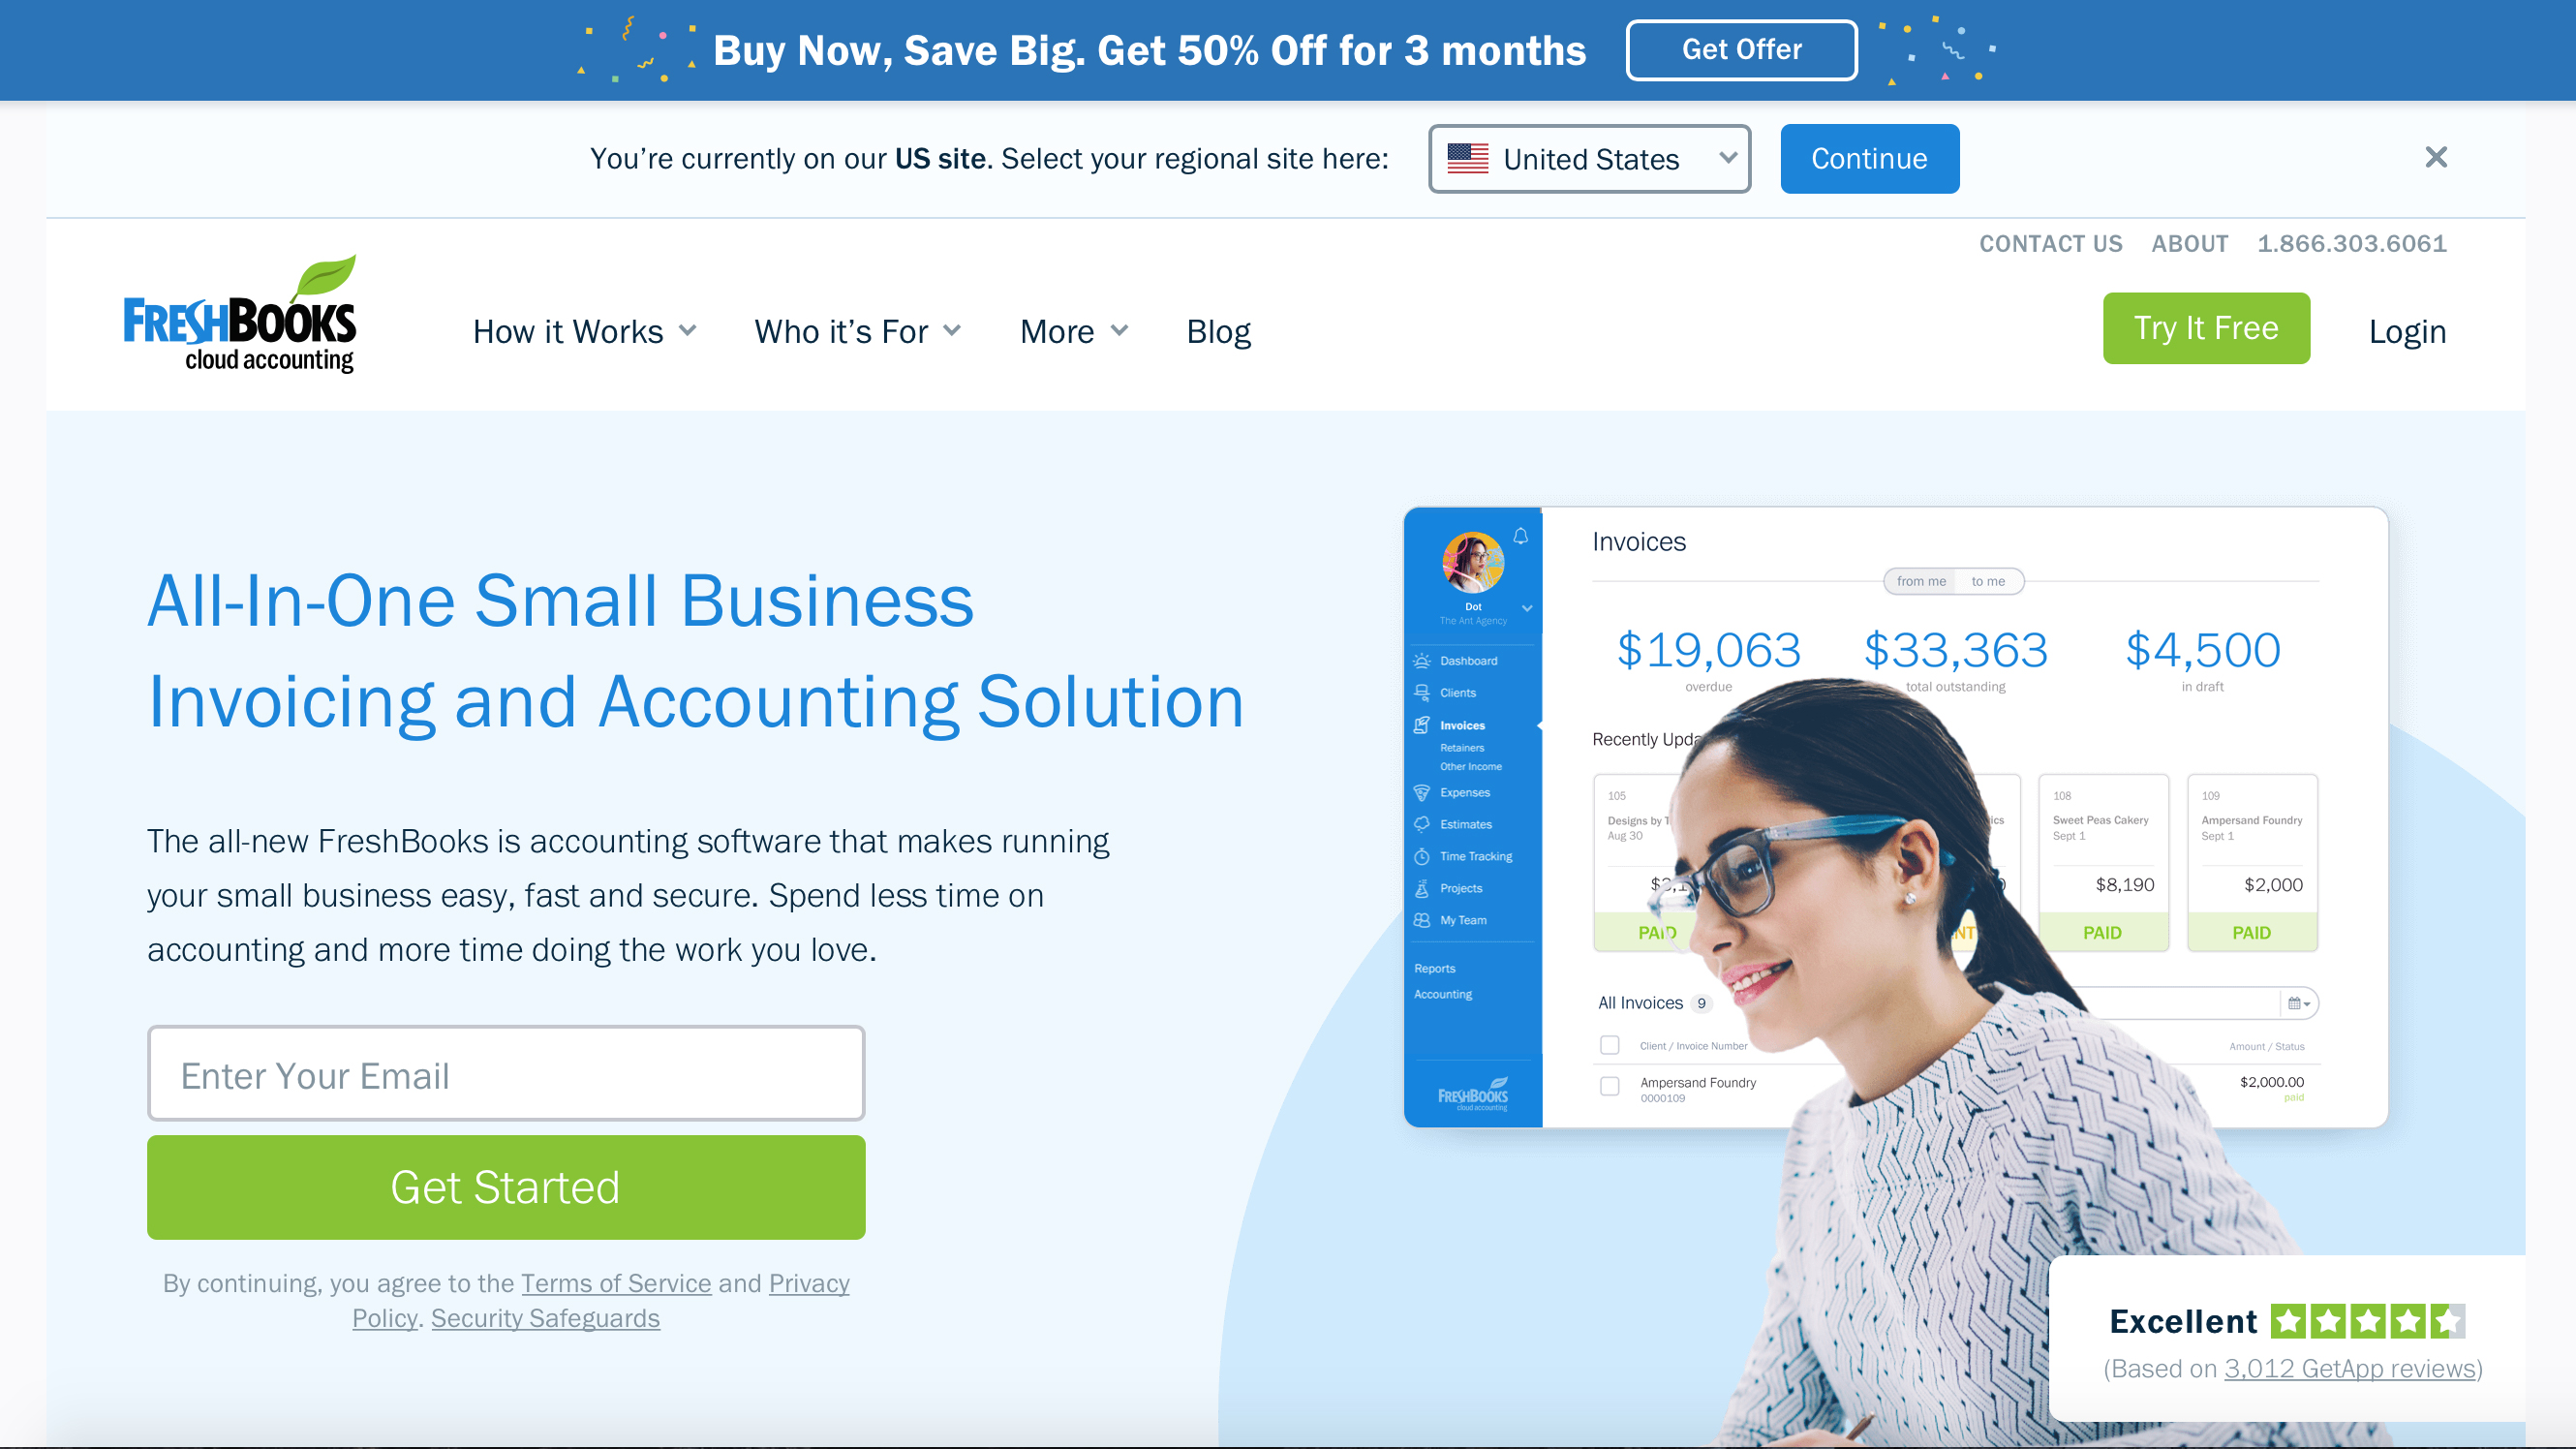 Freshbooks Voucher Code Printable 2020